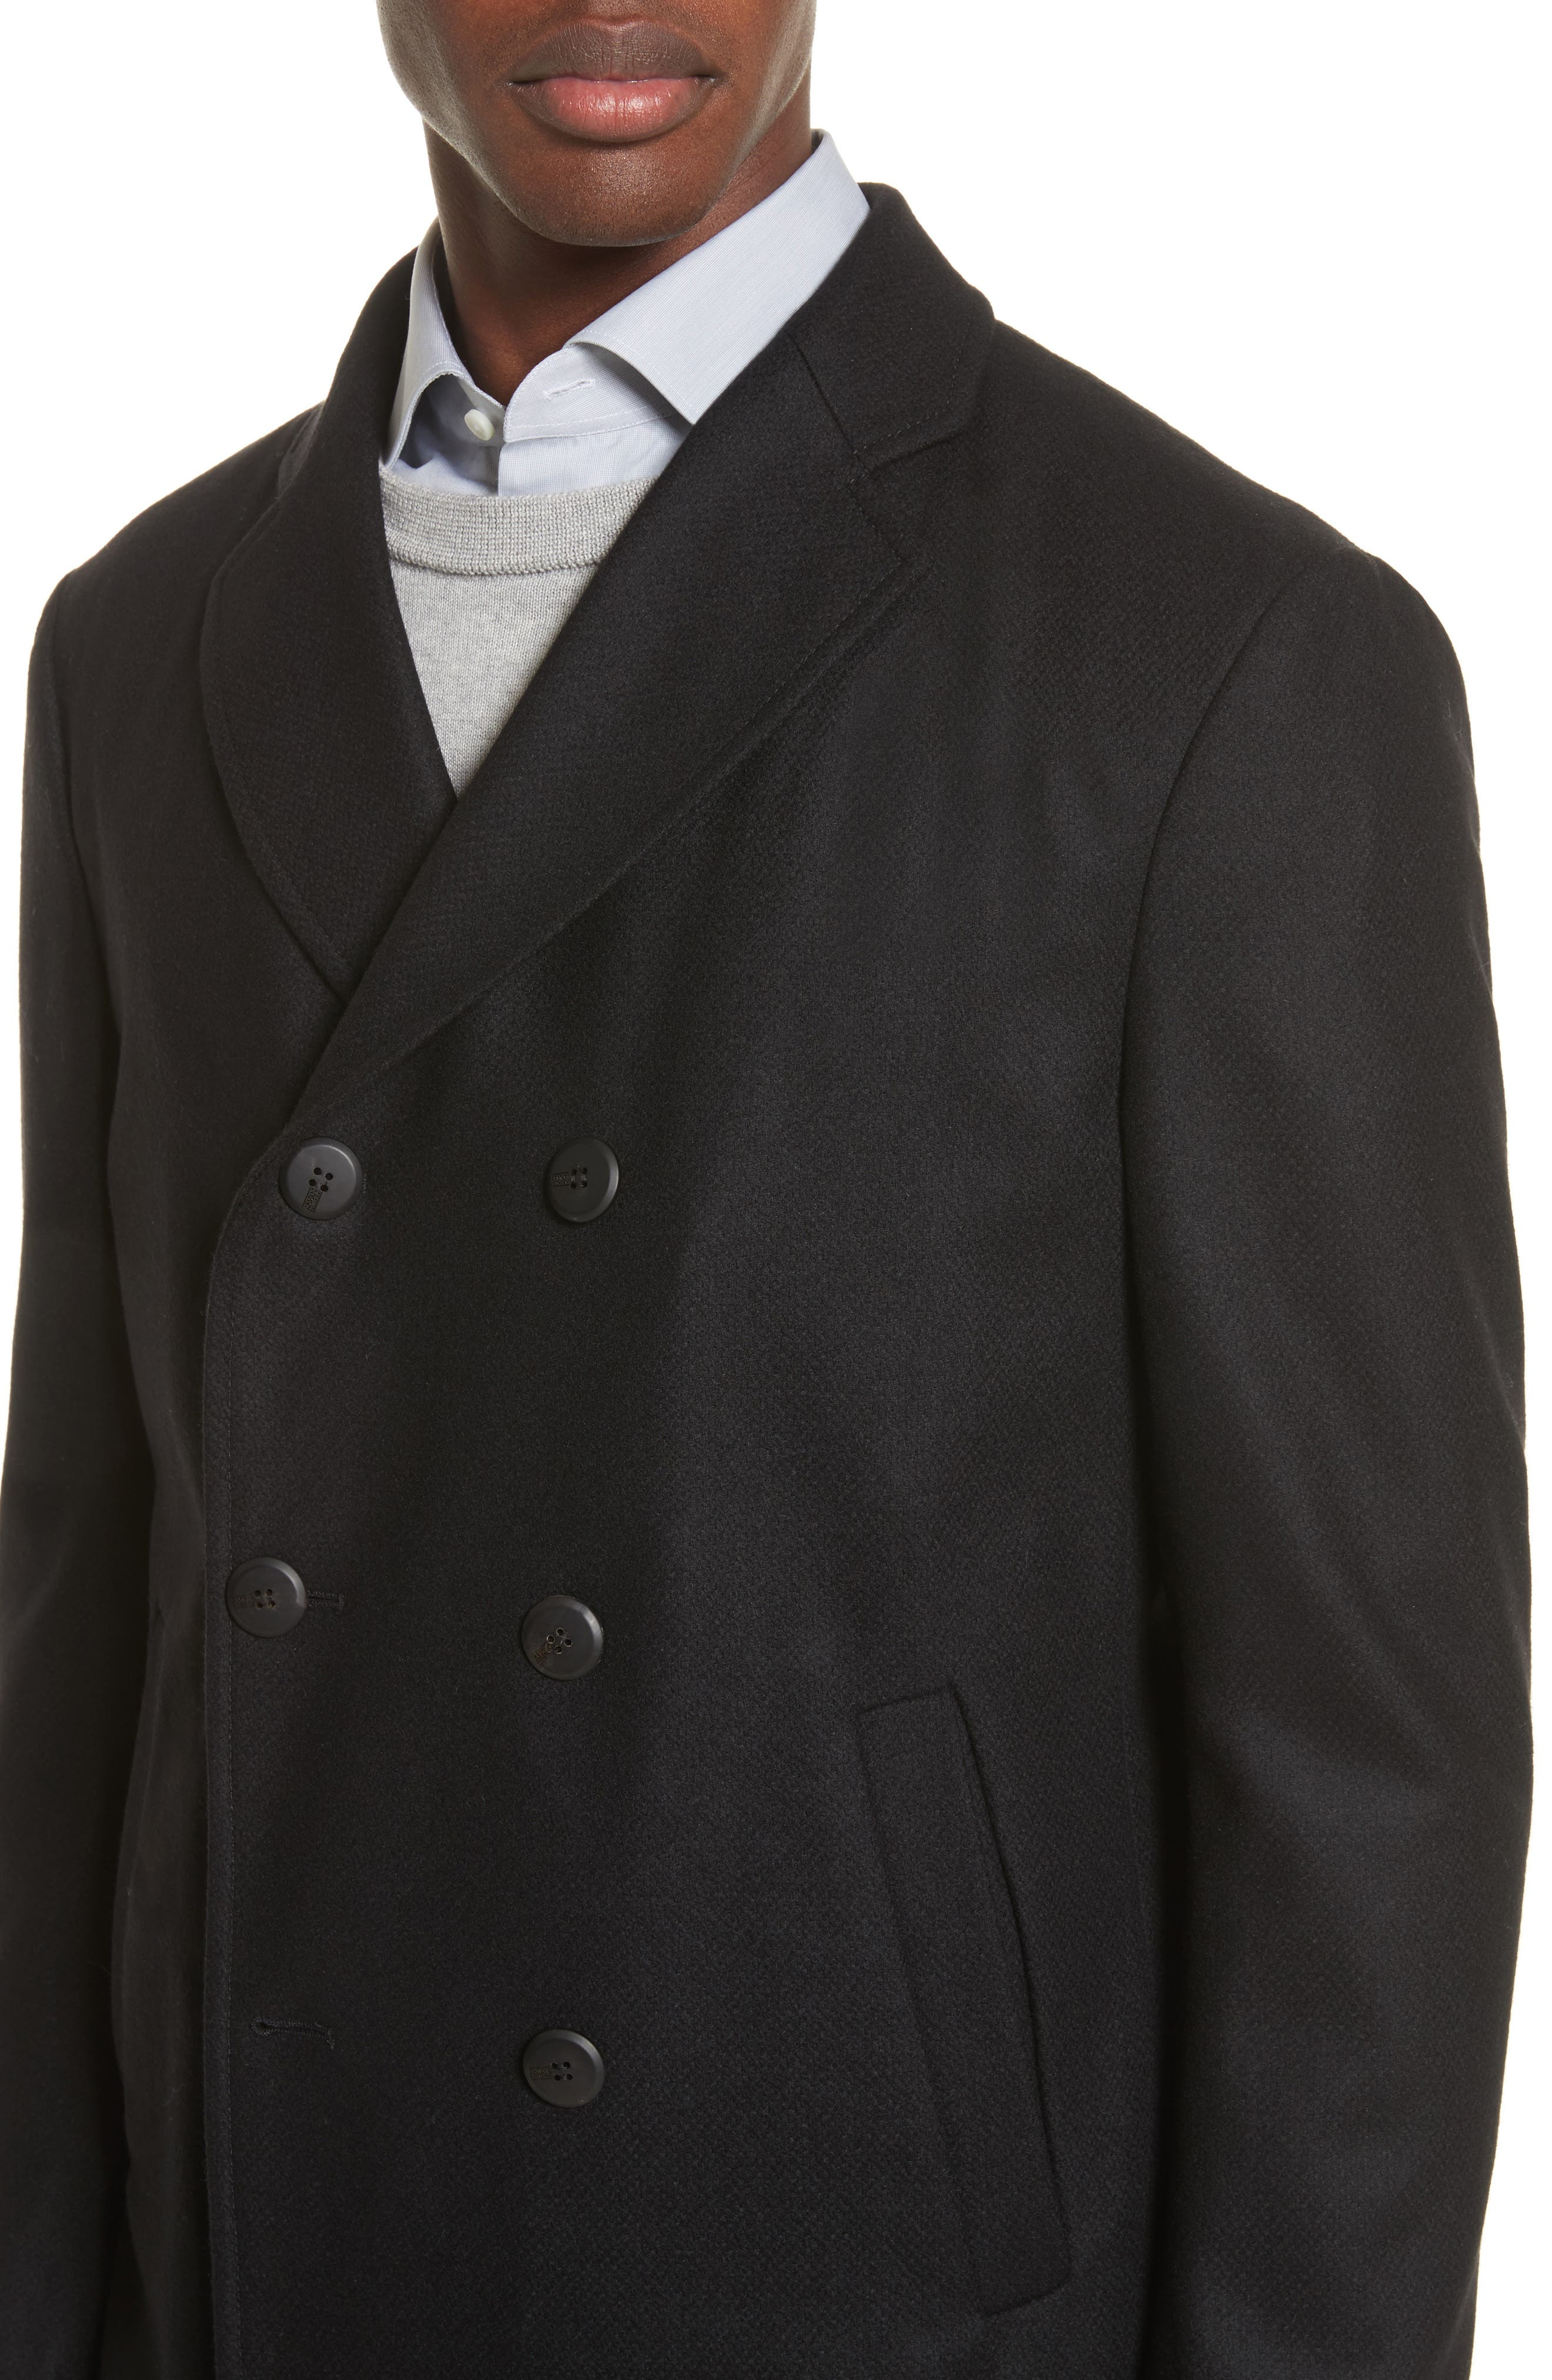 Double-Breasted Wool Topcoat,                             Alternate thumbnail 4, color,                             Black